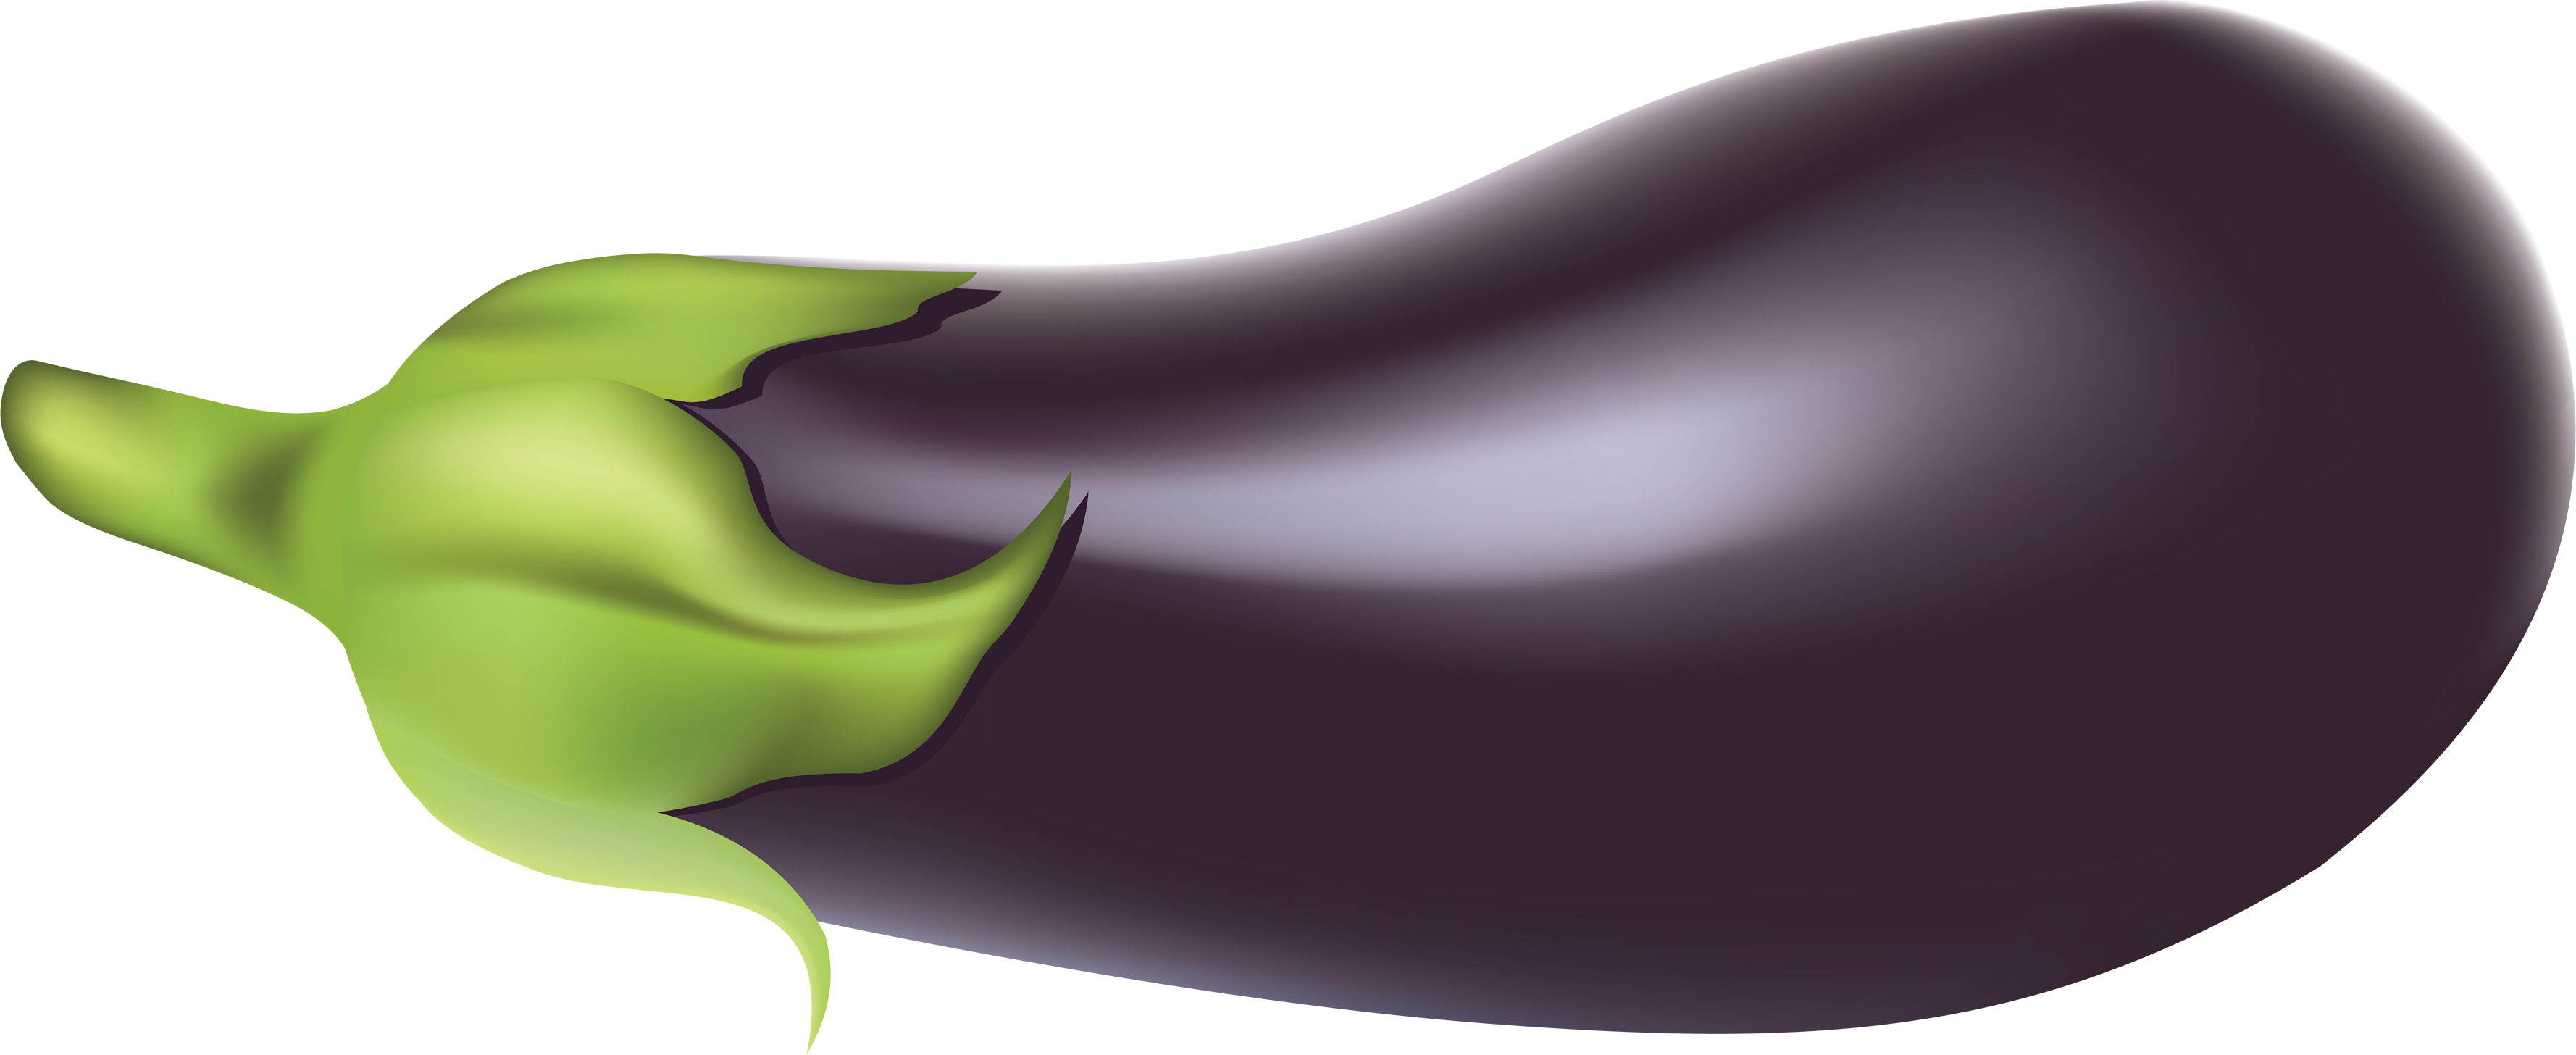 Vegetables free png images. Peppers clipart single vegetable